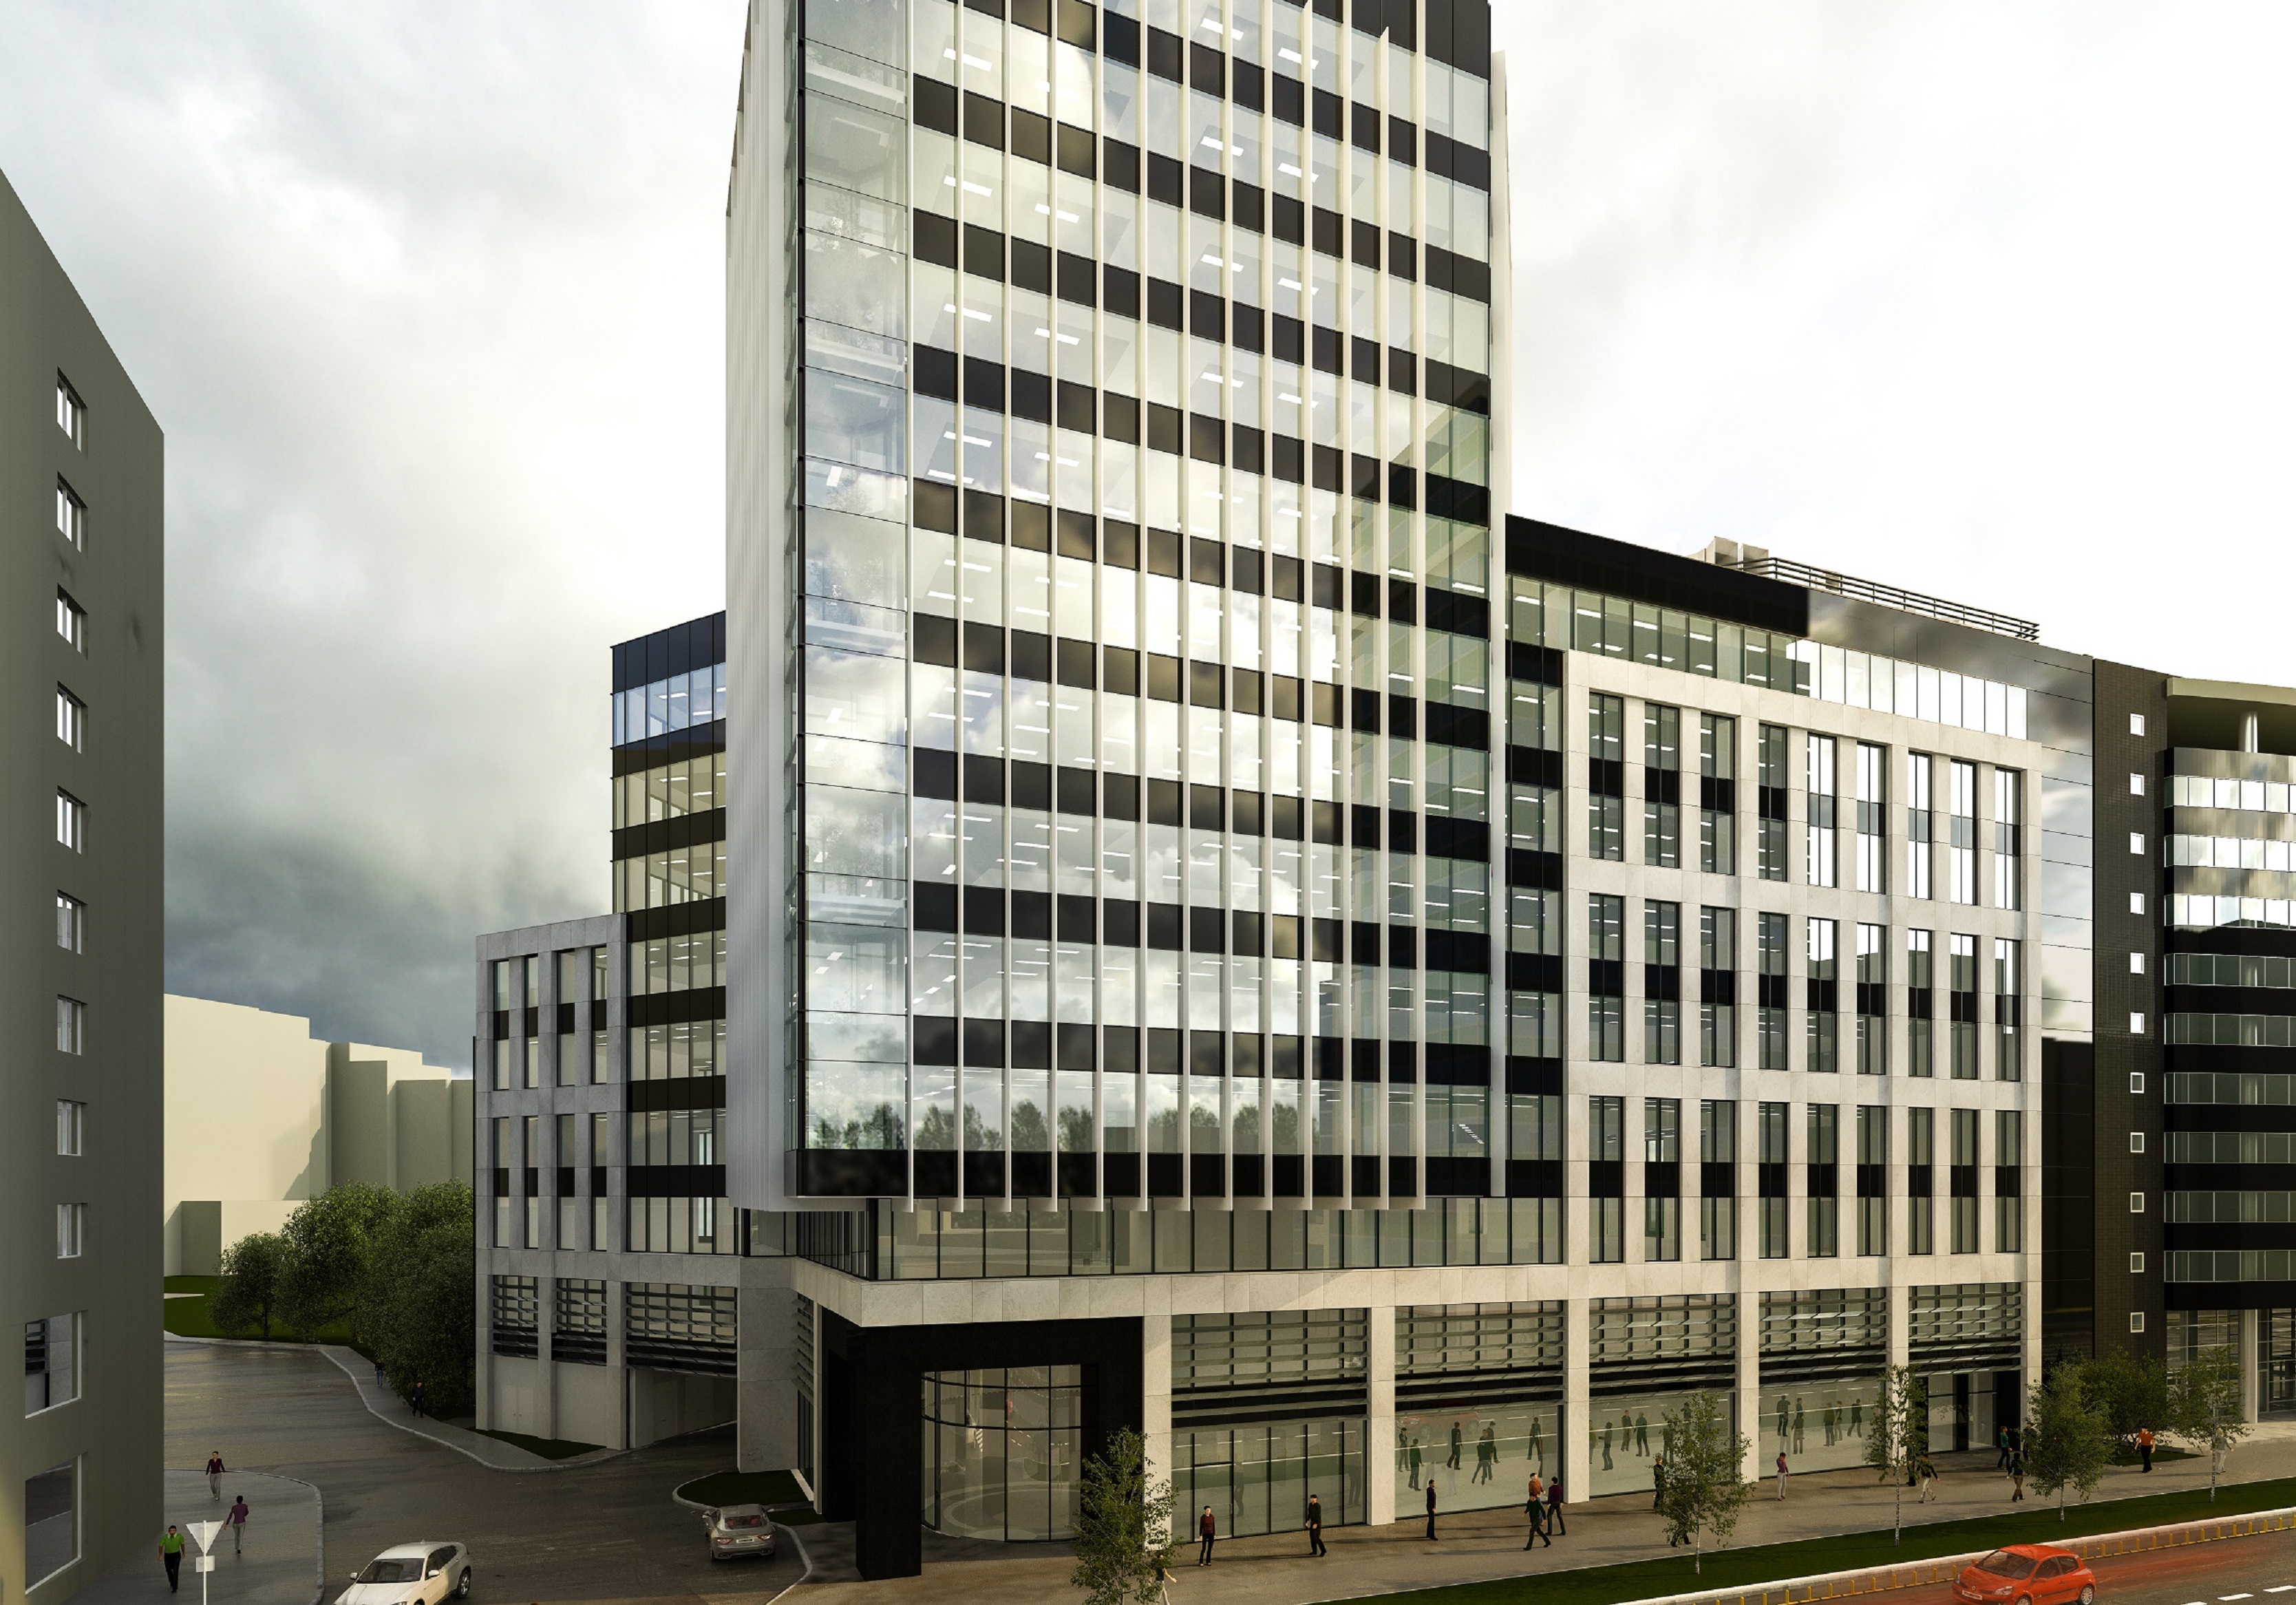 CBRE attracts a new tenant in the Țiriac Tower office building, developed by Țiriac Imobiliare